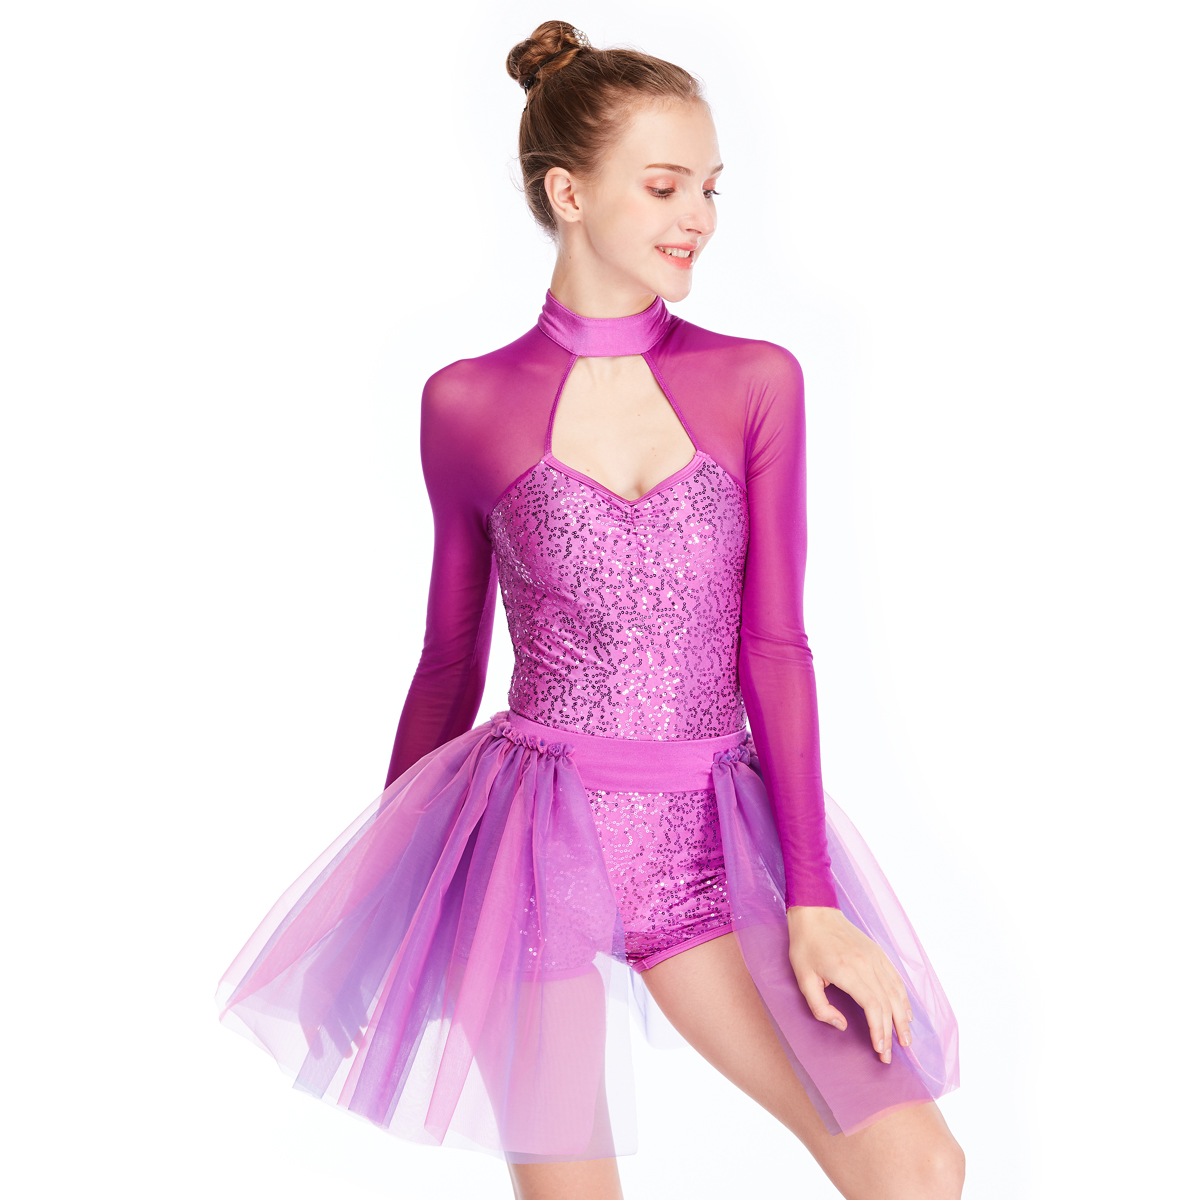 MIDEE long ballet dress toddler odm competition-1